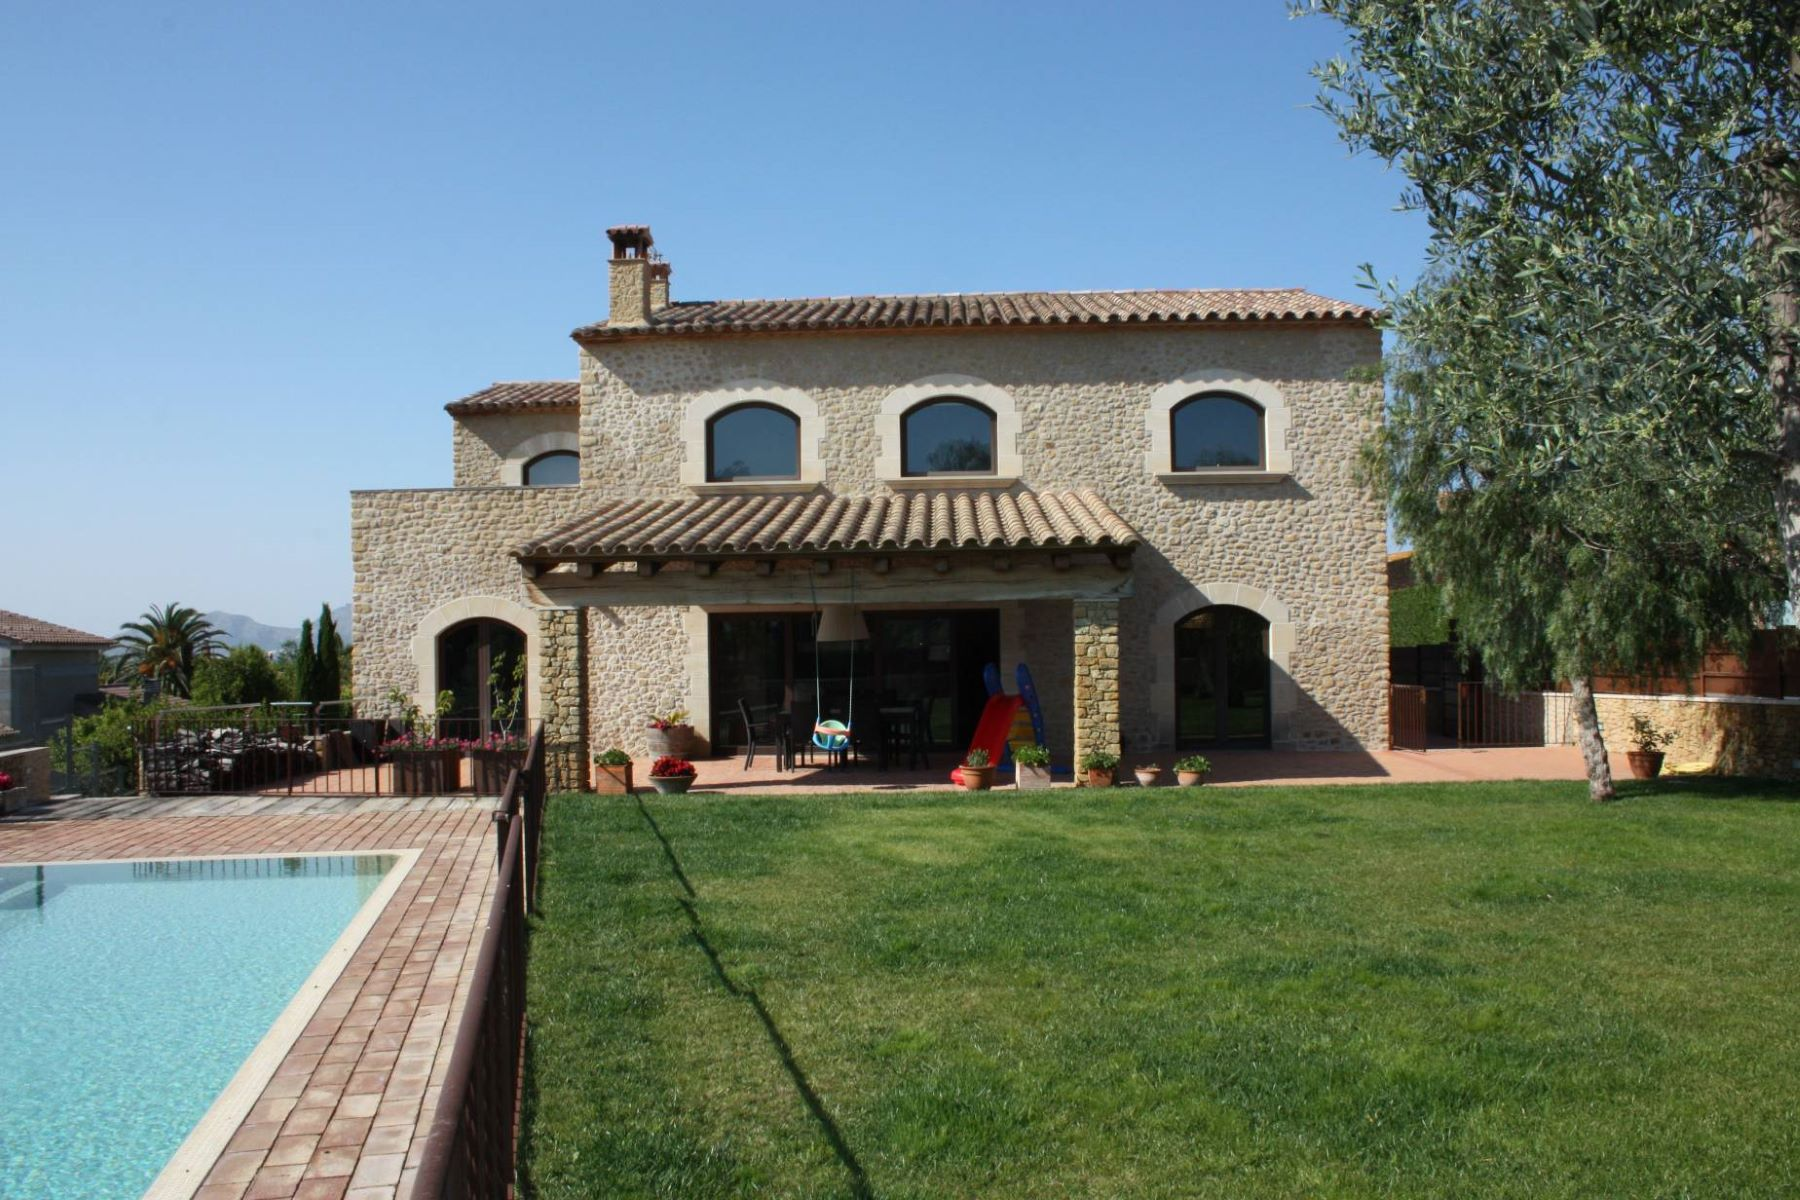 Single Family Home for Sale at Cottage charming Other Spain, Other Areas In Spain, 17001 Spain